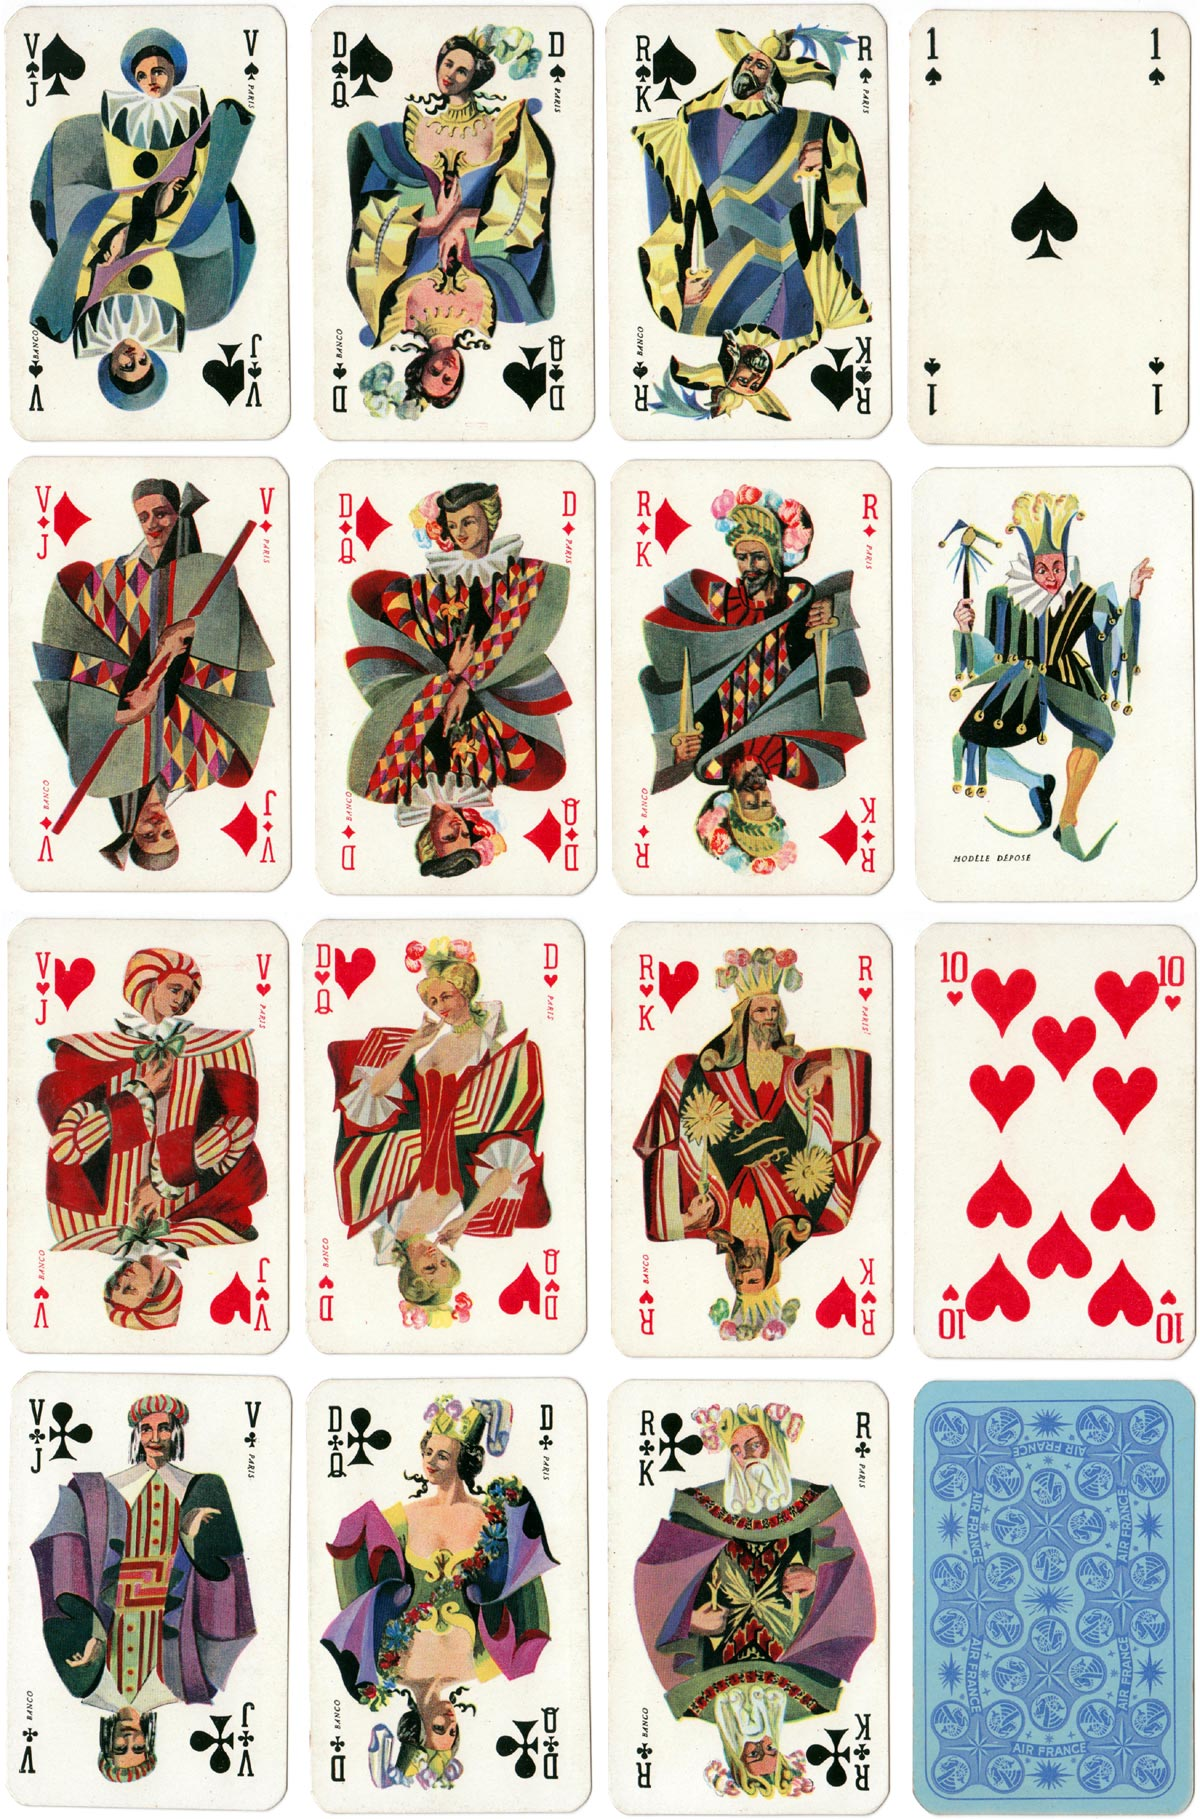 Banco playing cards for Air France manufactured by Draeger Frères, c.1952